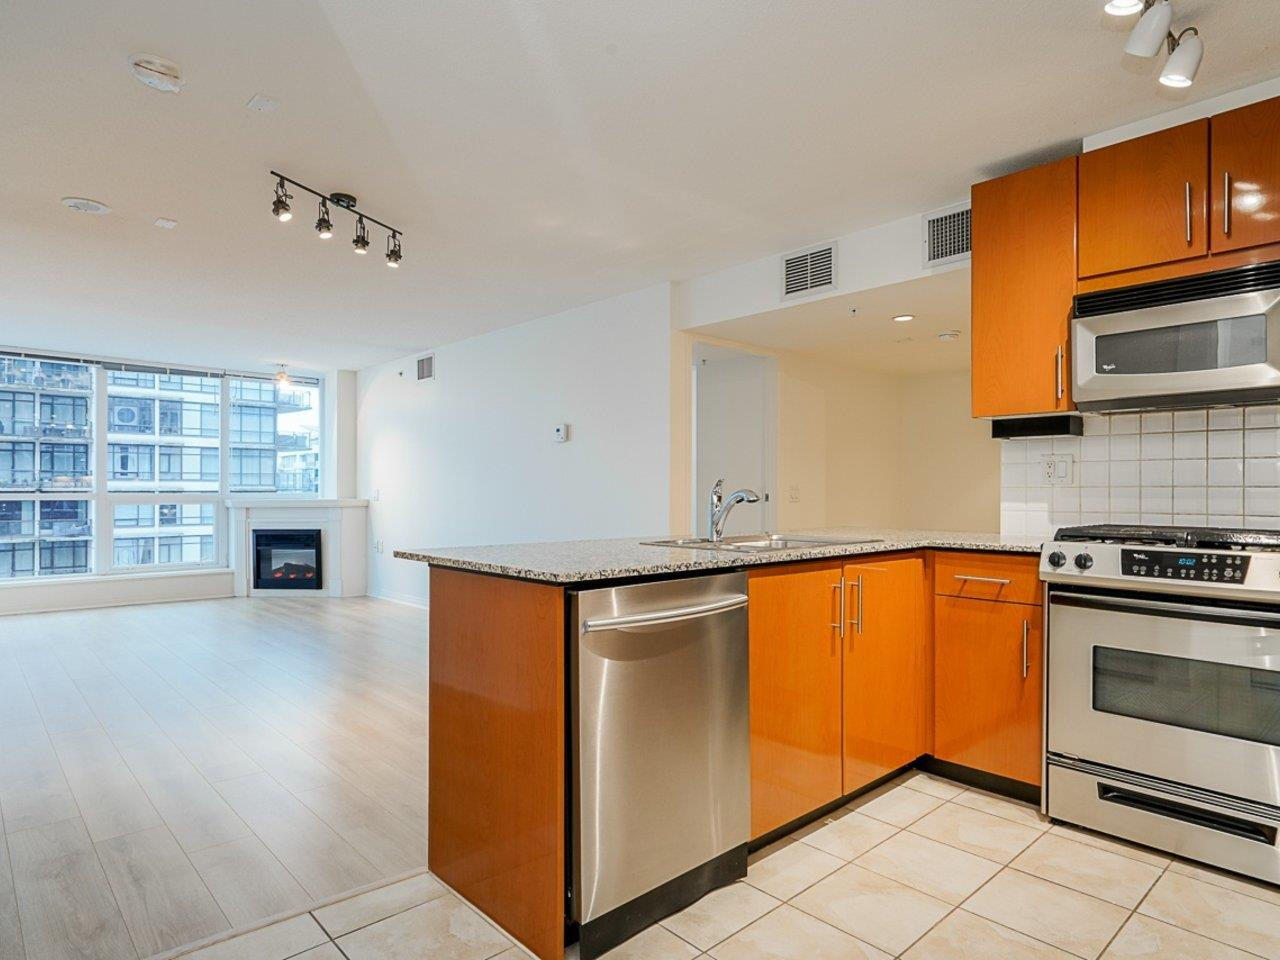 604 188 E ESPLANADE - Lower Lonsdale Apartment/Condo for sale, 2 Bedrooms (R2528391) - #5